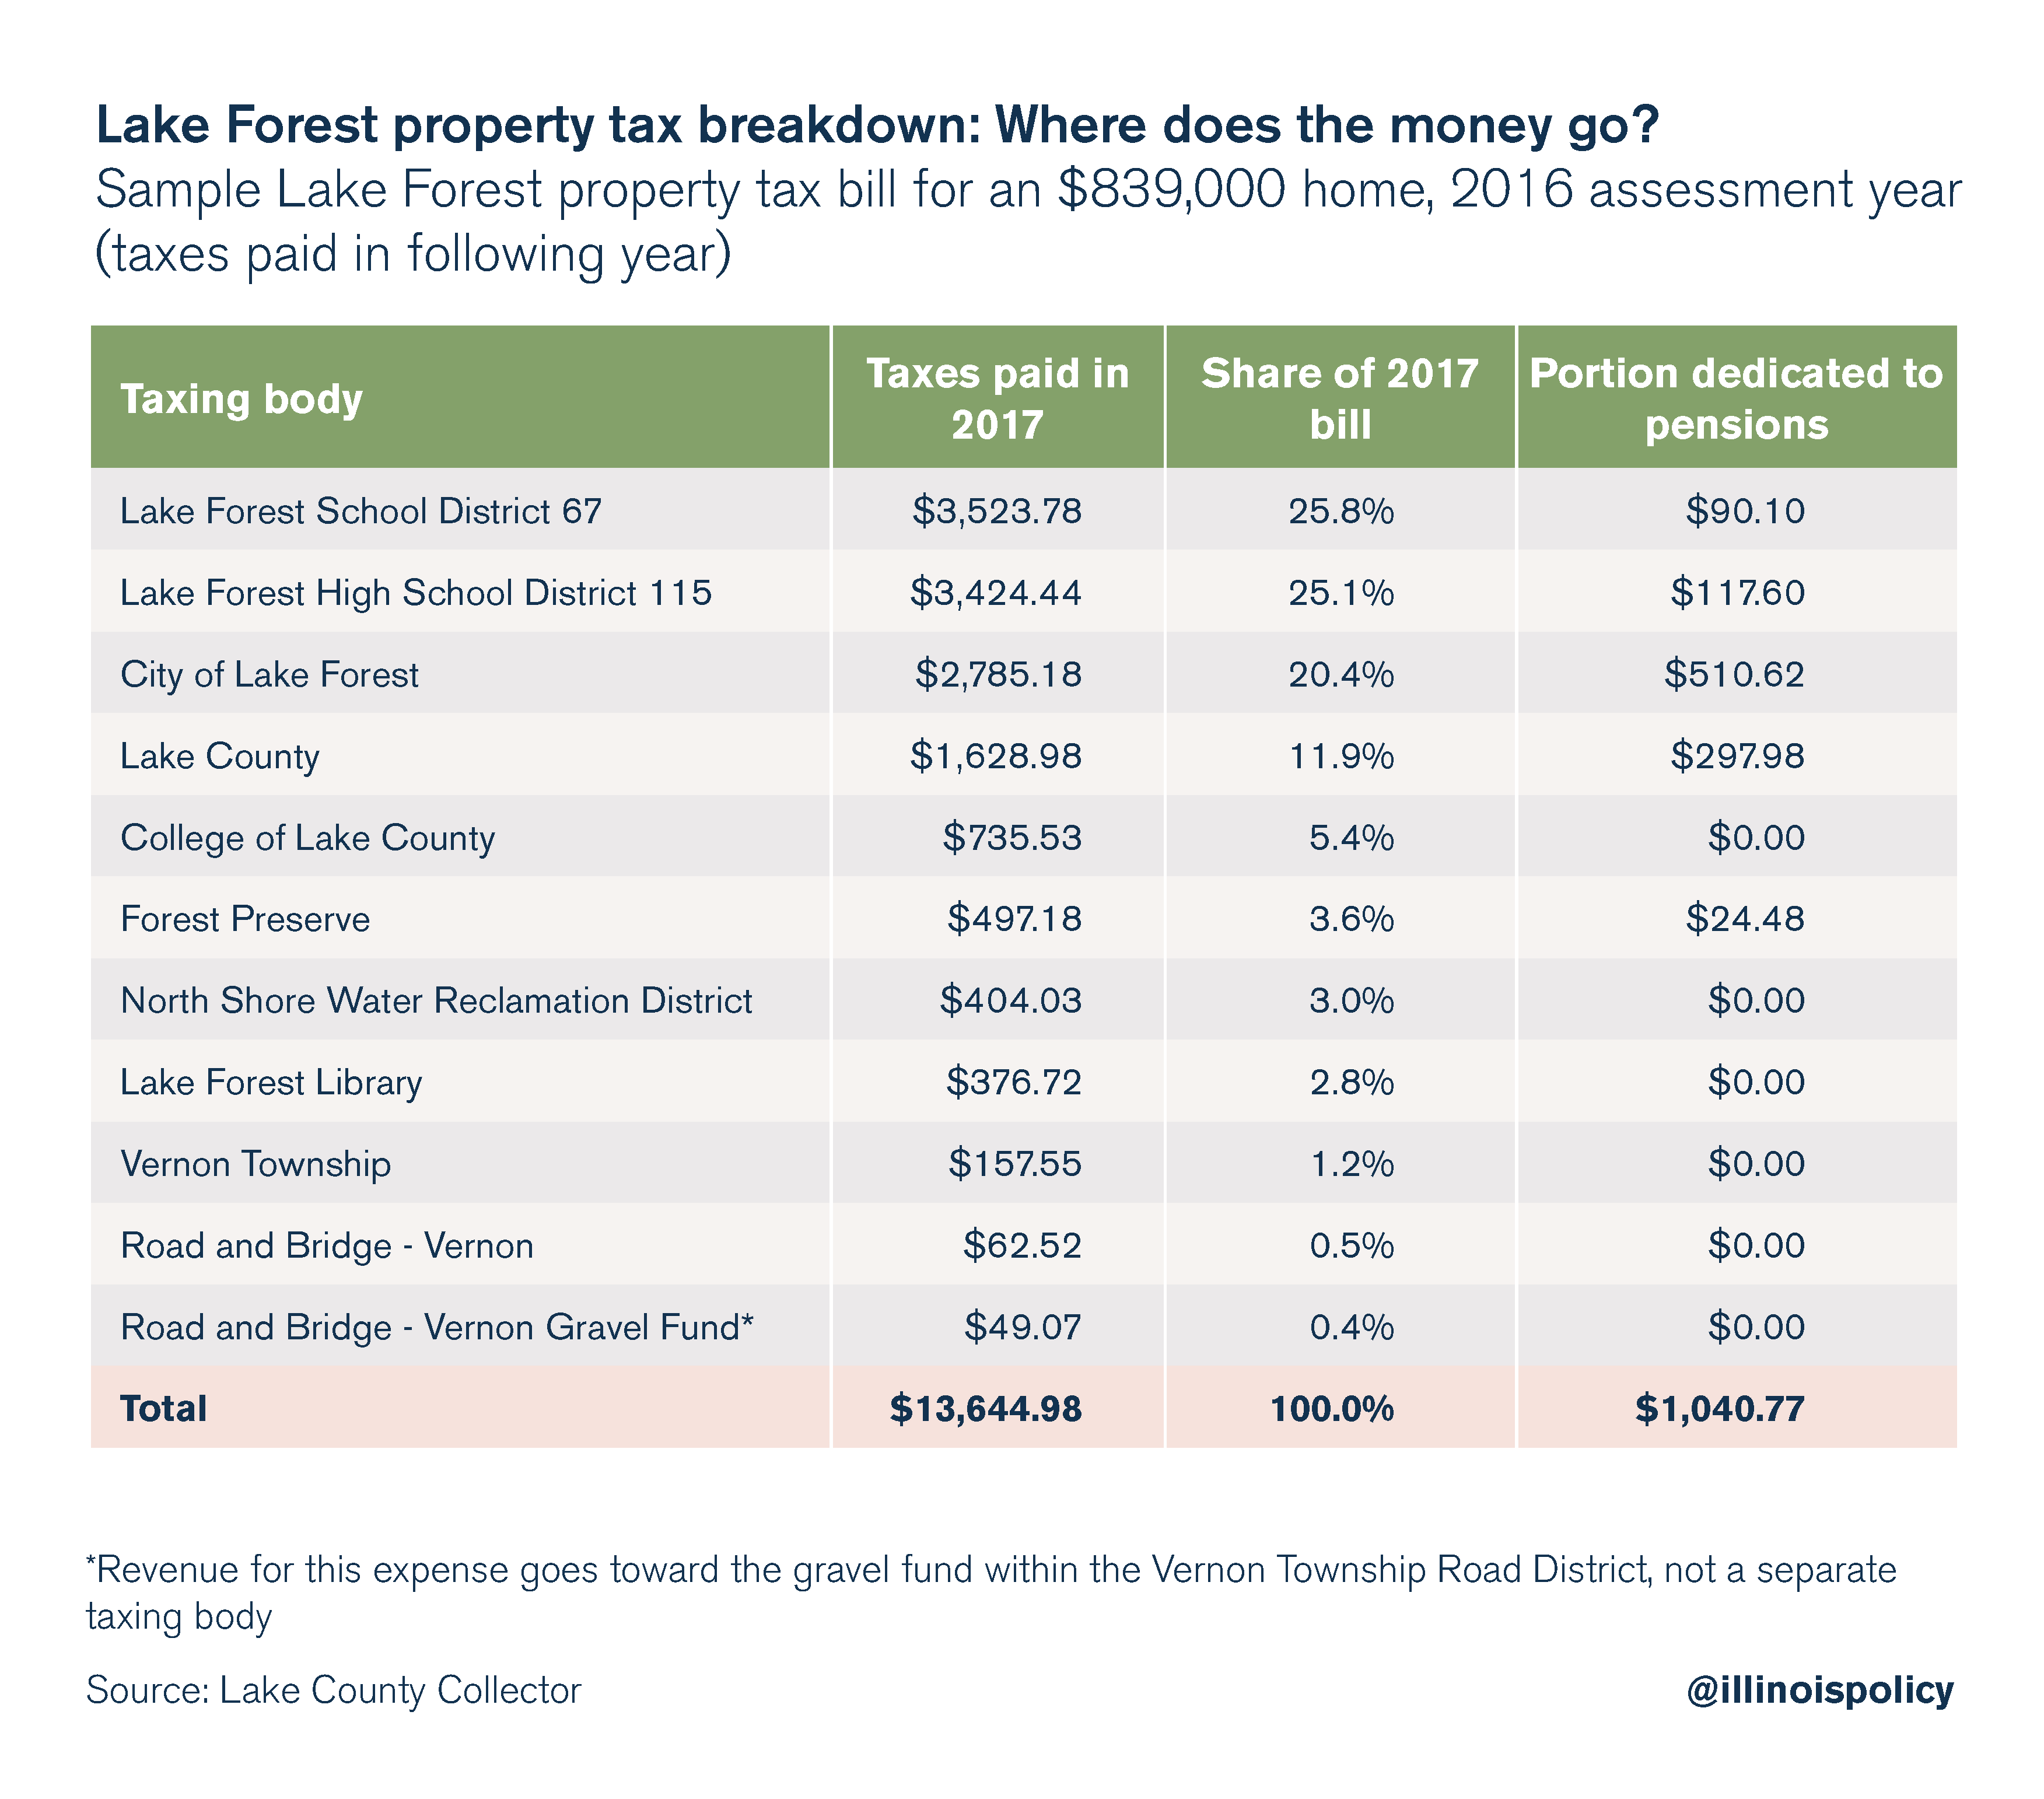 Lake Forest property tax breakdown: Where does the money go?